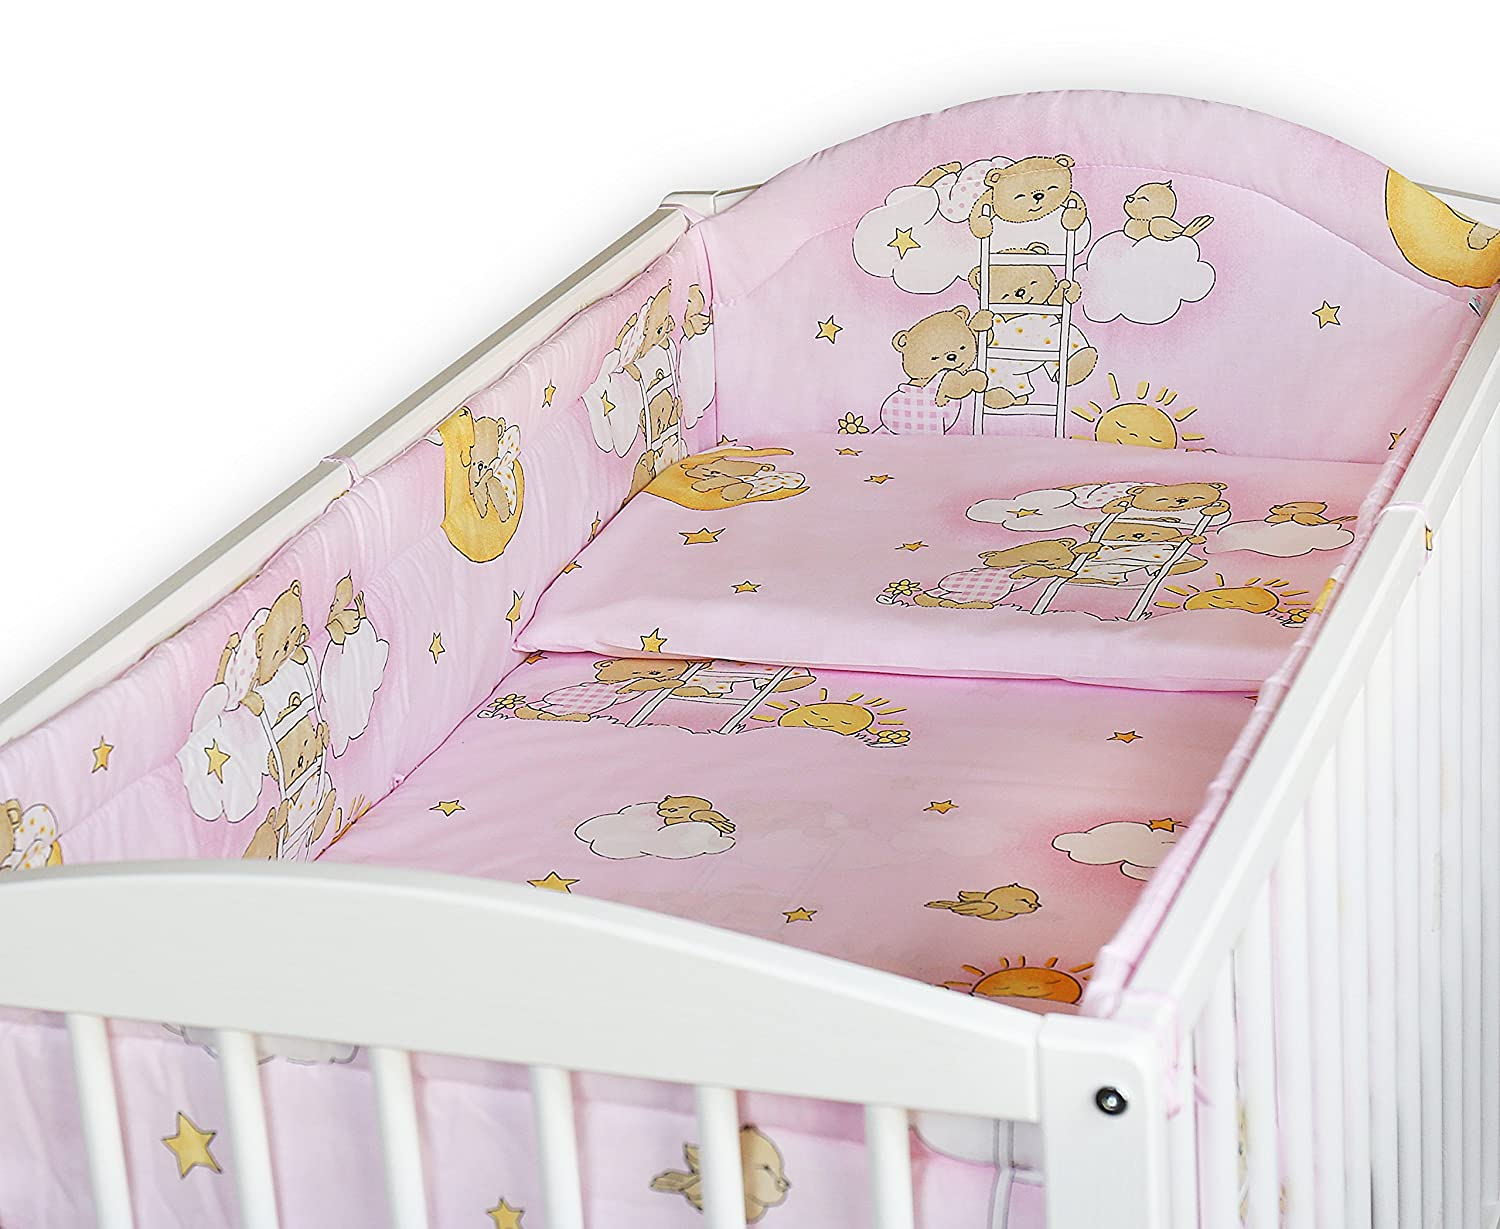 SAFARI PINK BABY BEDDING SET ALLROUND BUMPER PILLOW DUVET COVER FOR COT 120x60 SET 5 PC